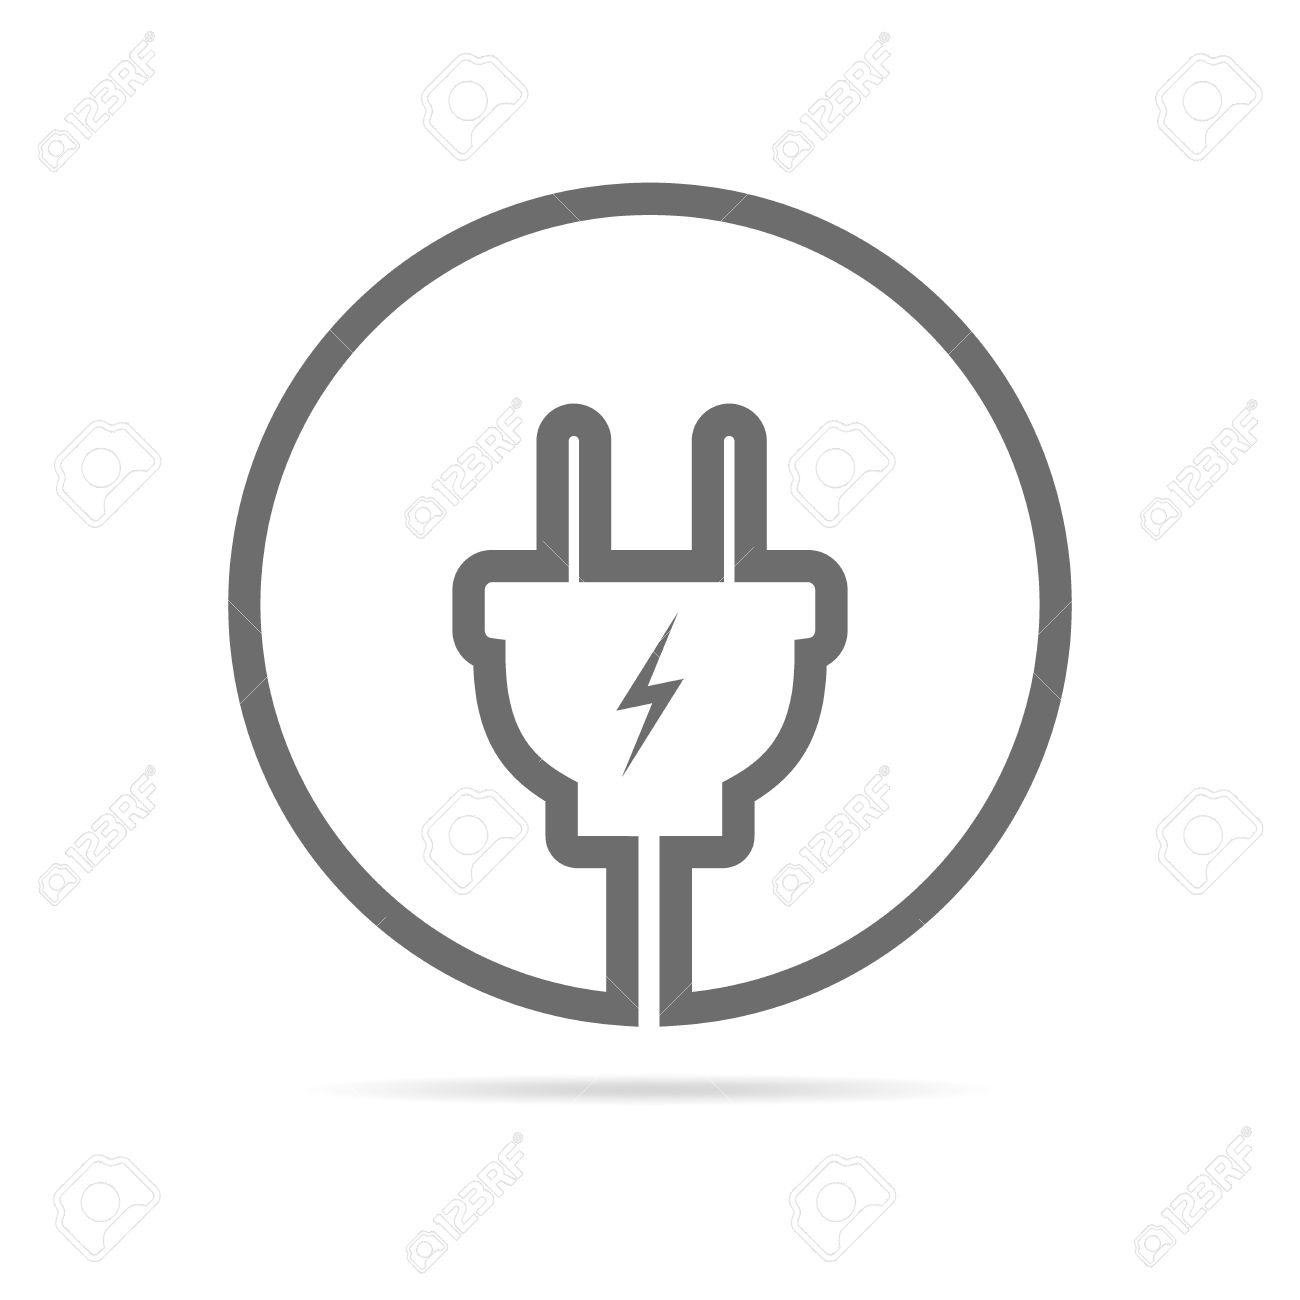 Wire Plug Icon In Flat Design Vector Illustration Wiring A The Circle Concept Of Connection And Disconnection Electricity